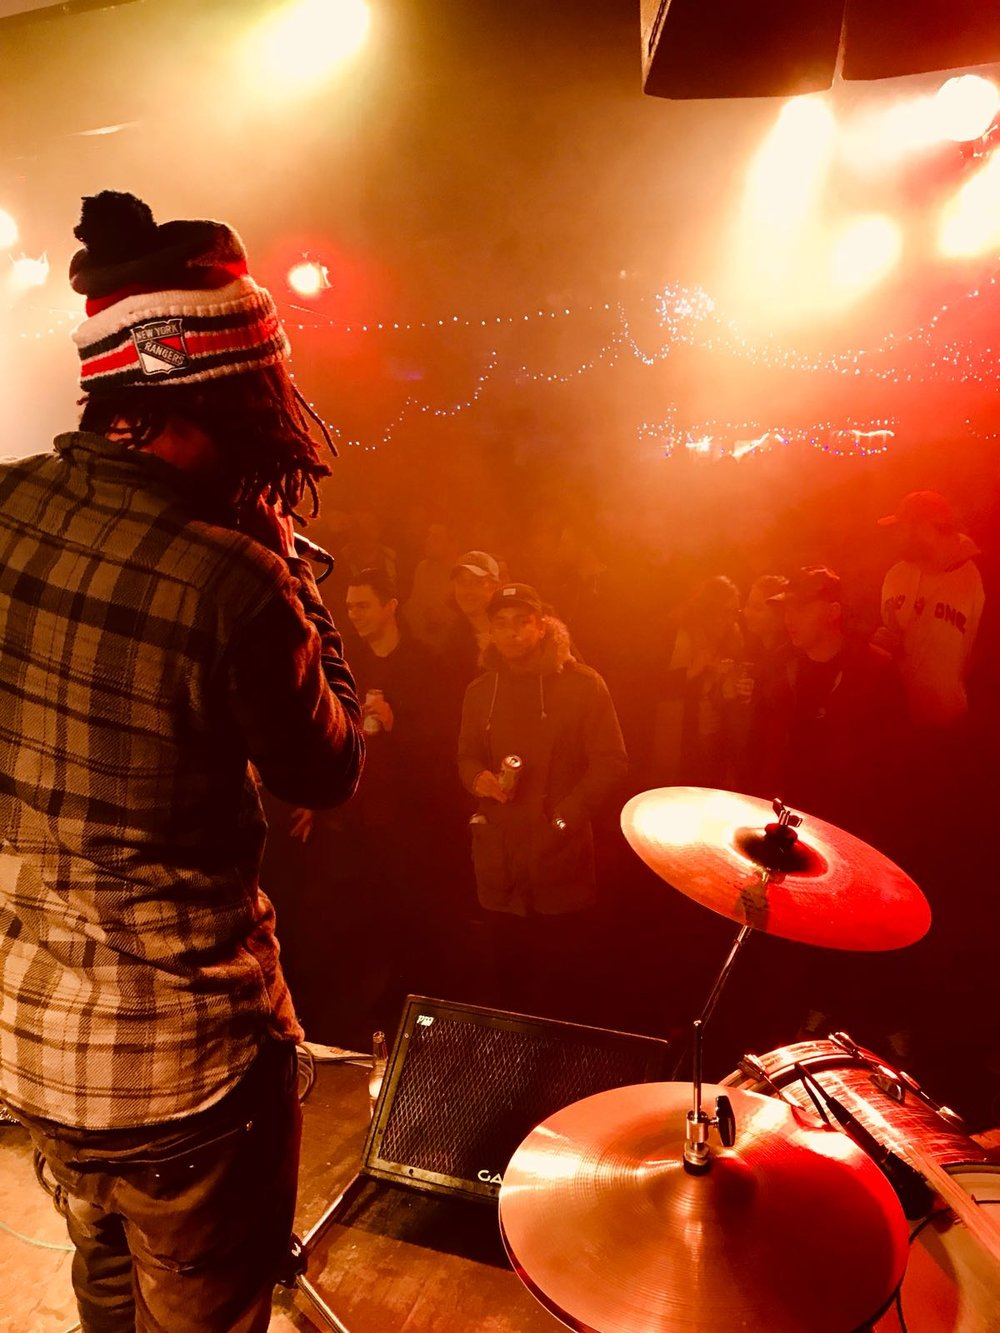 Our view from the stage, featuring Dwella... Opening for Pharoahe Monch